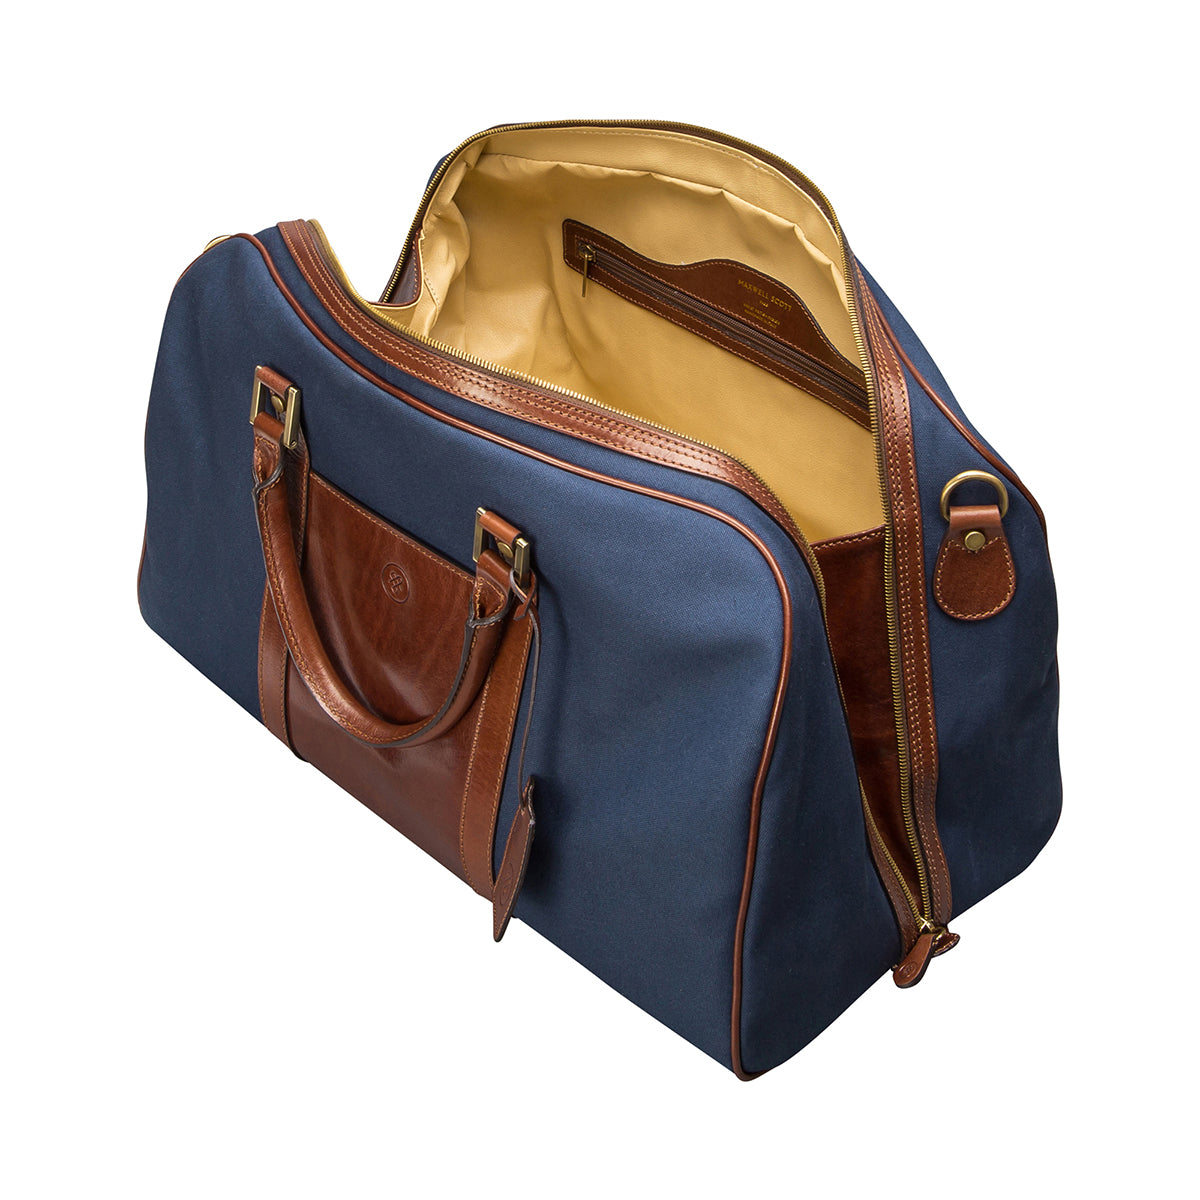 Image 5 of the 'Giovane' Rich Navy and Tan Holdall